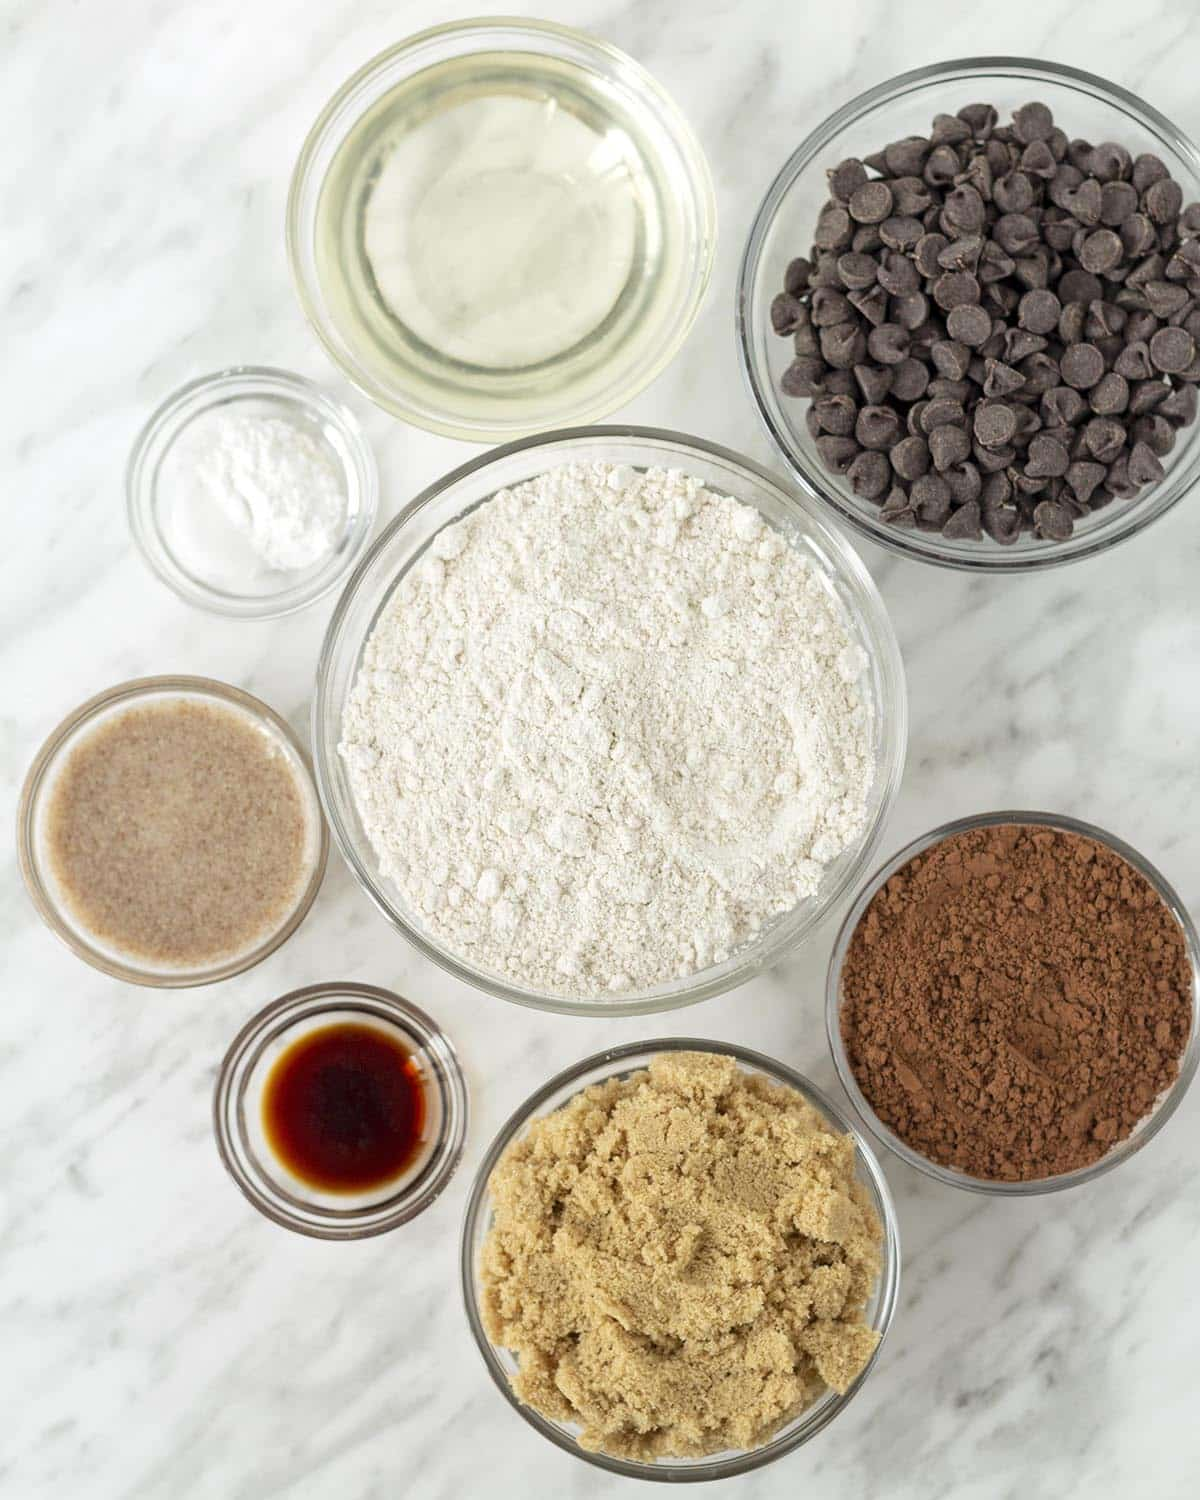 An overhead shot of the ingredients needed to make these cookies, all ingredients are in separate glass bowls.